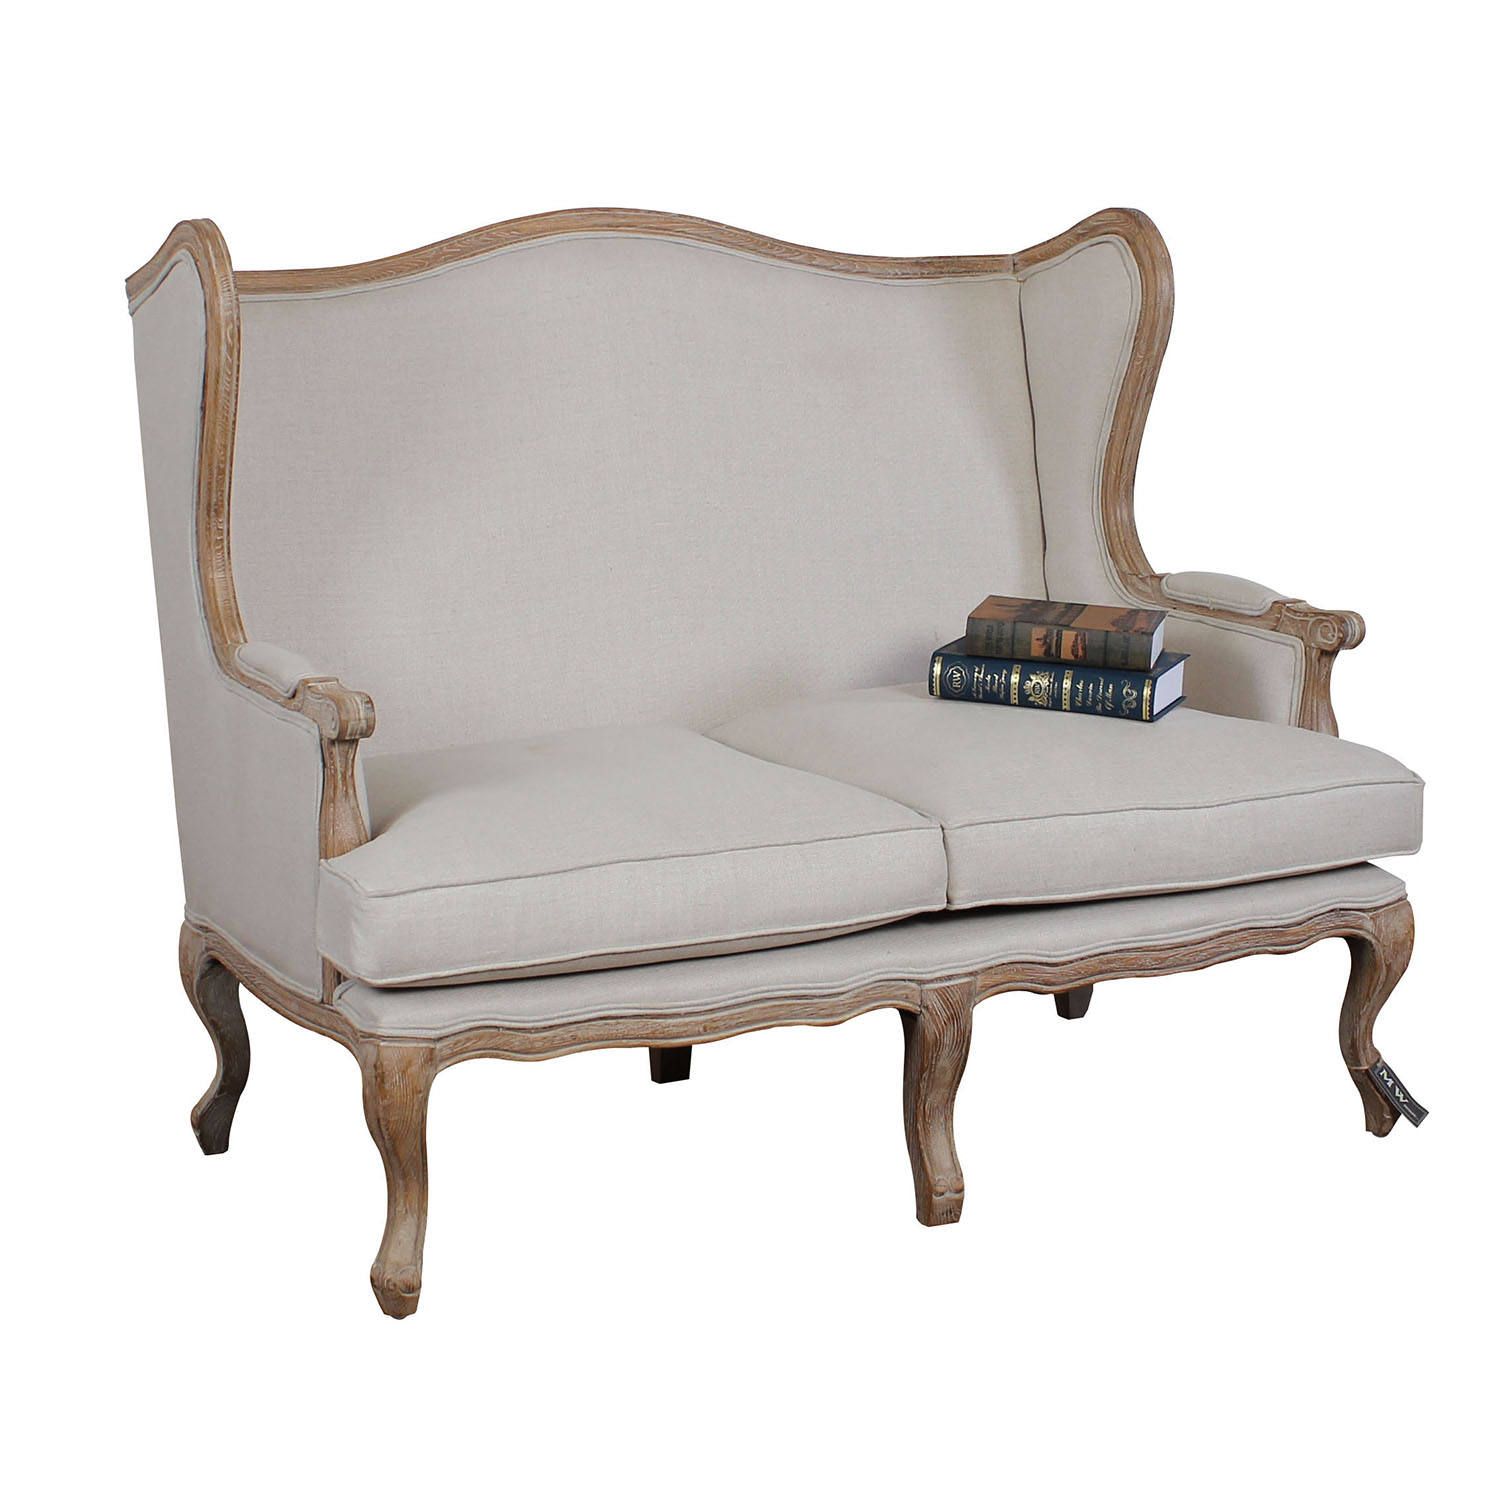 French country style solid oak wood two seat wing chair sofa